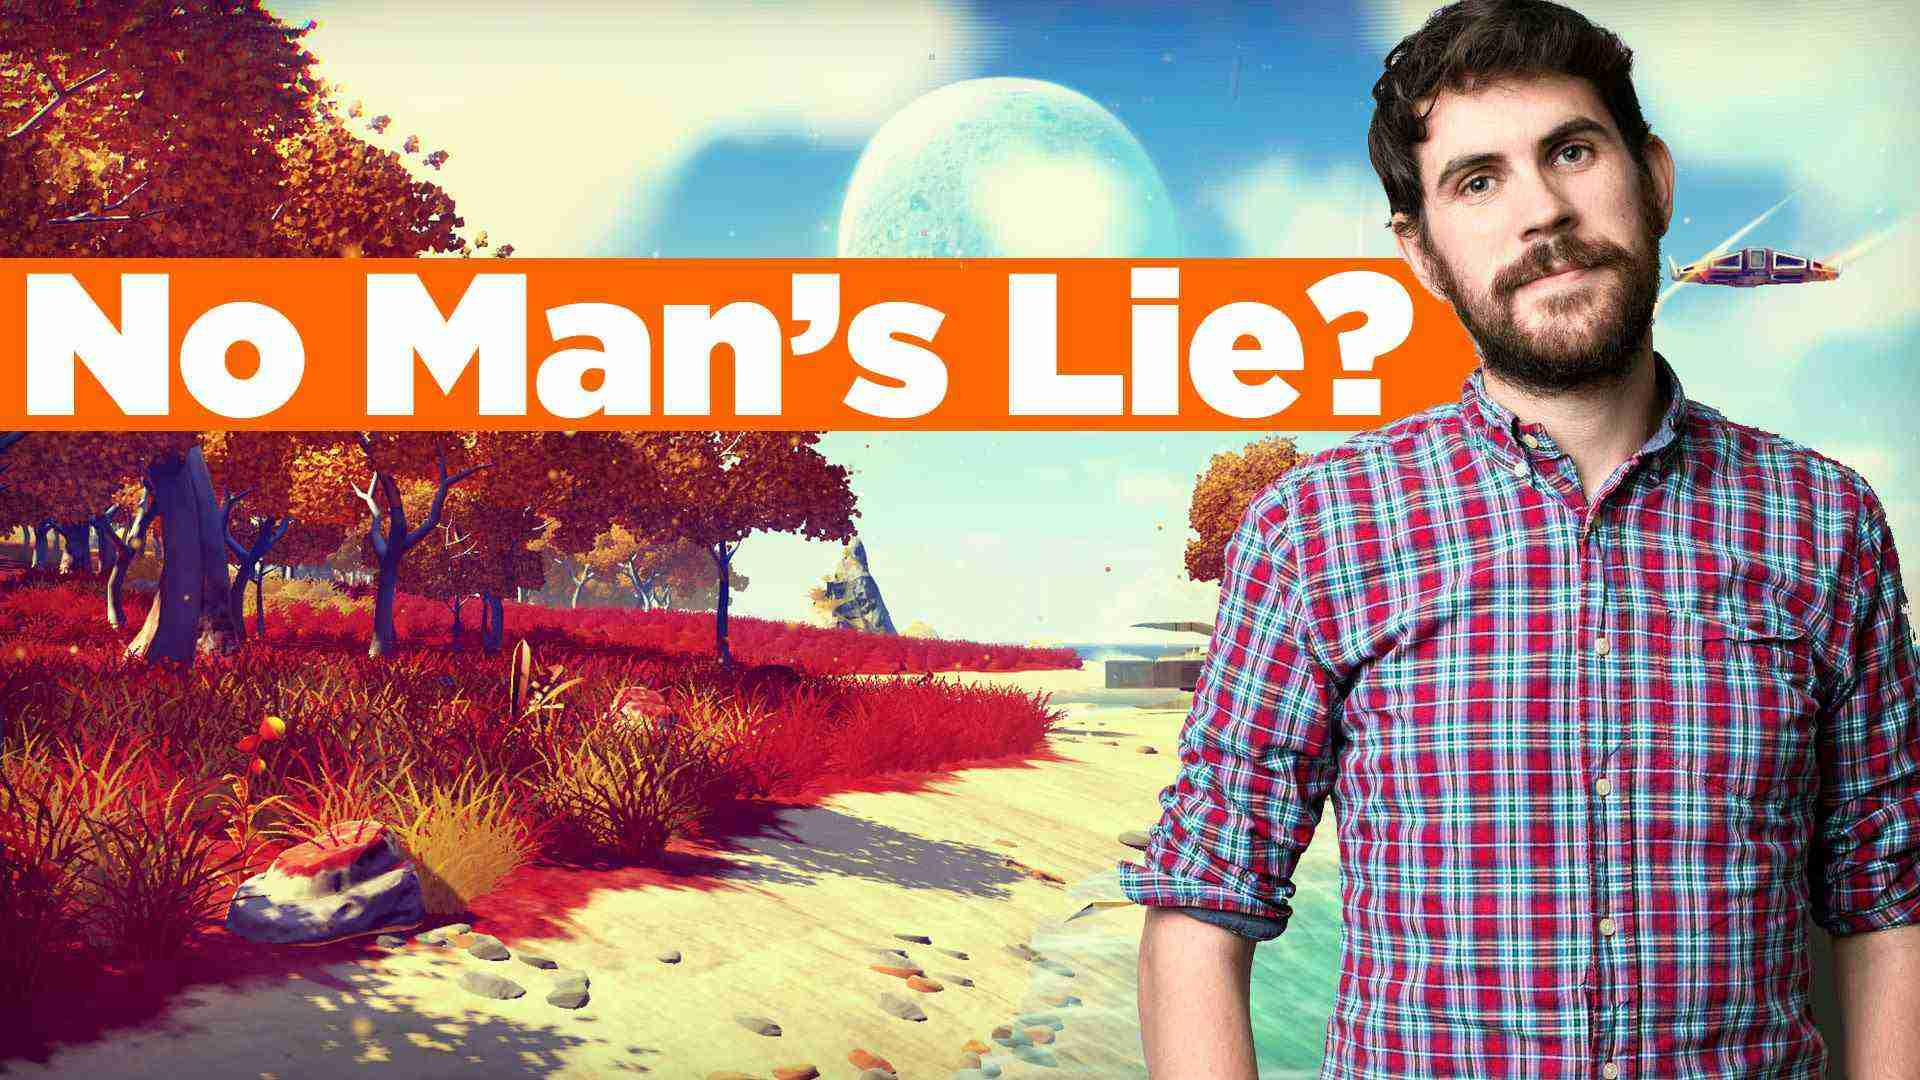 Did No Man's Sky Lie? – Inside Gaming Daily